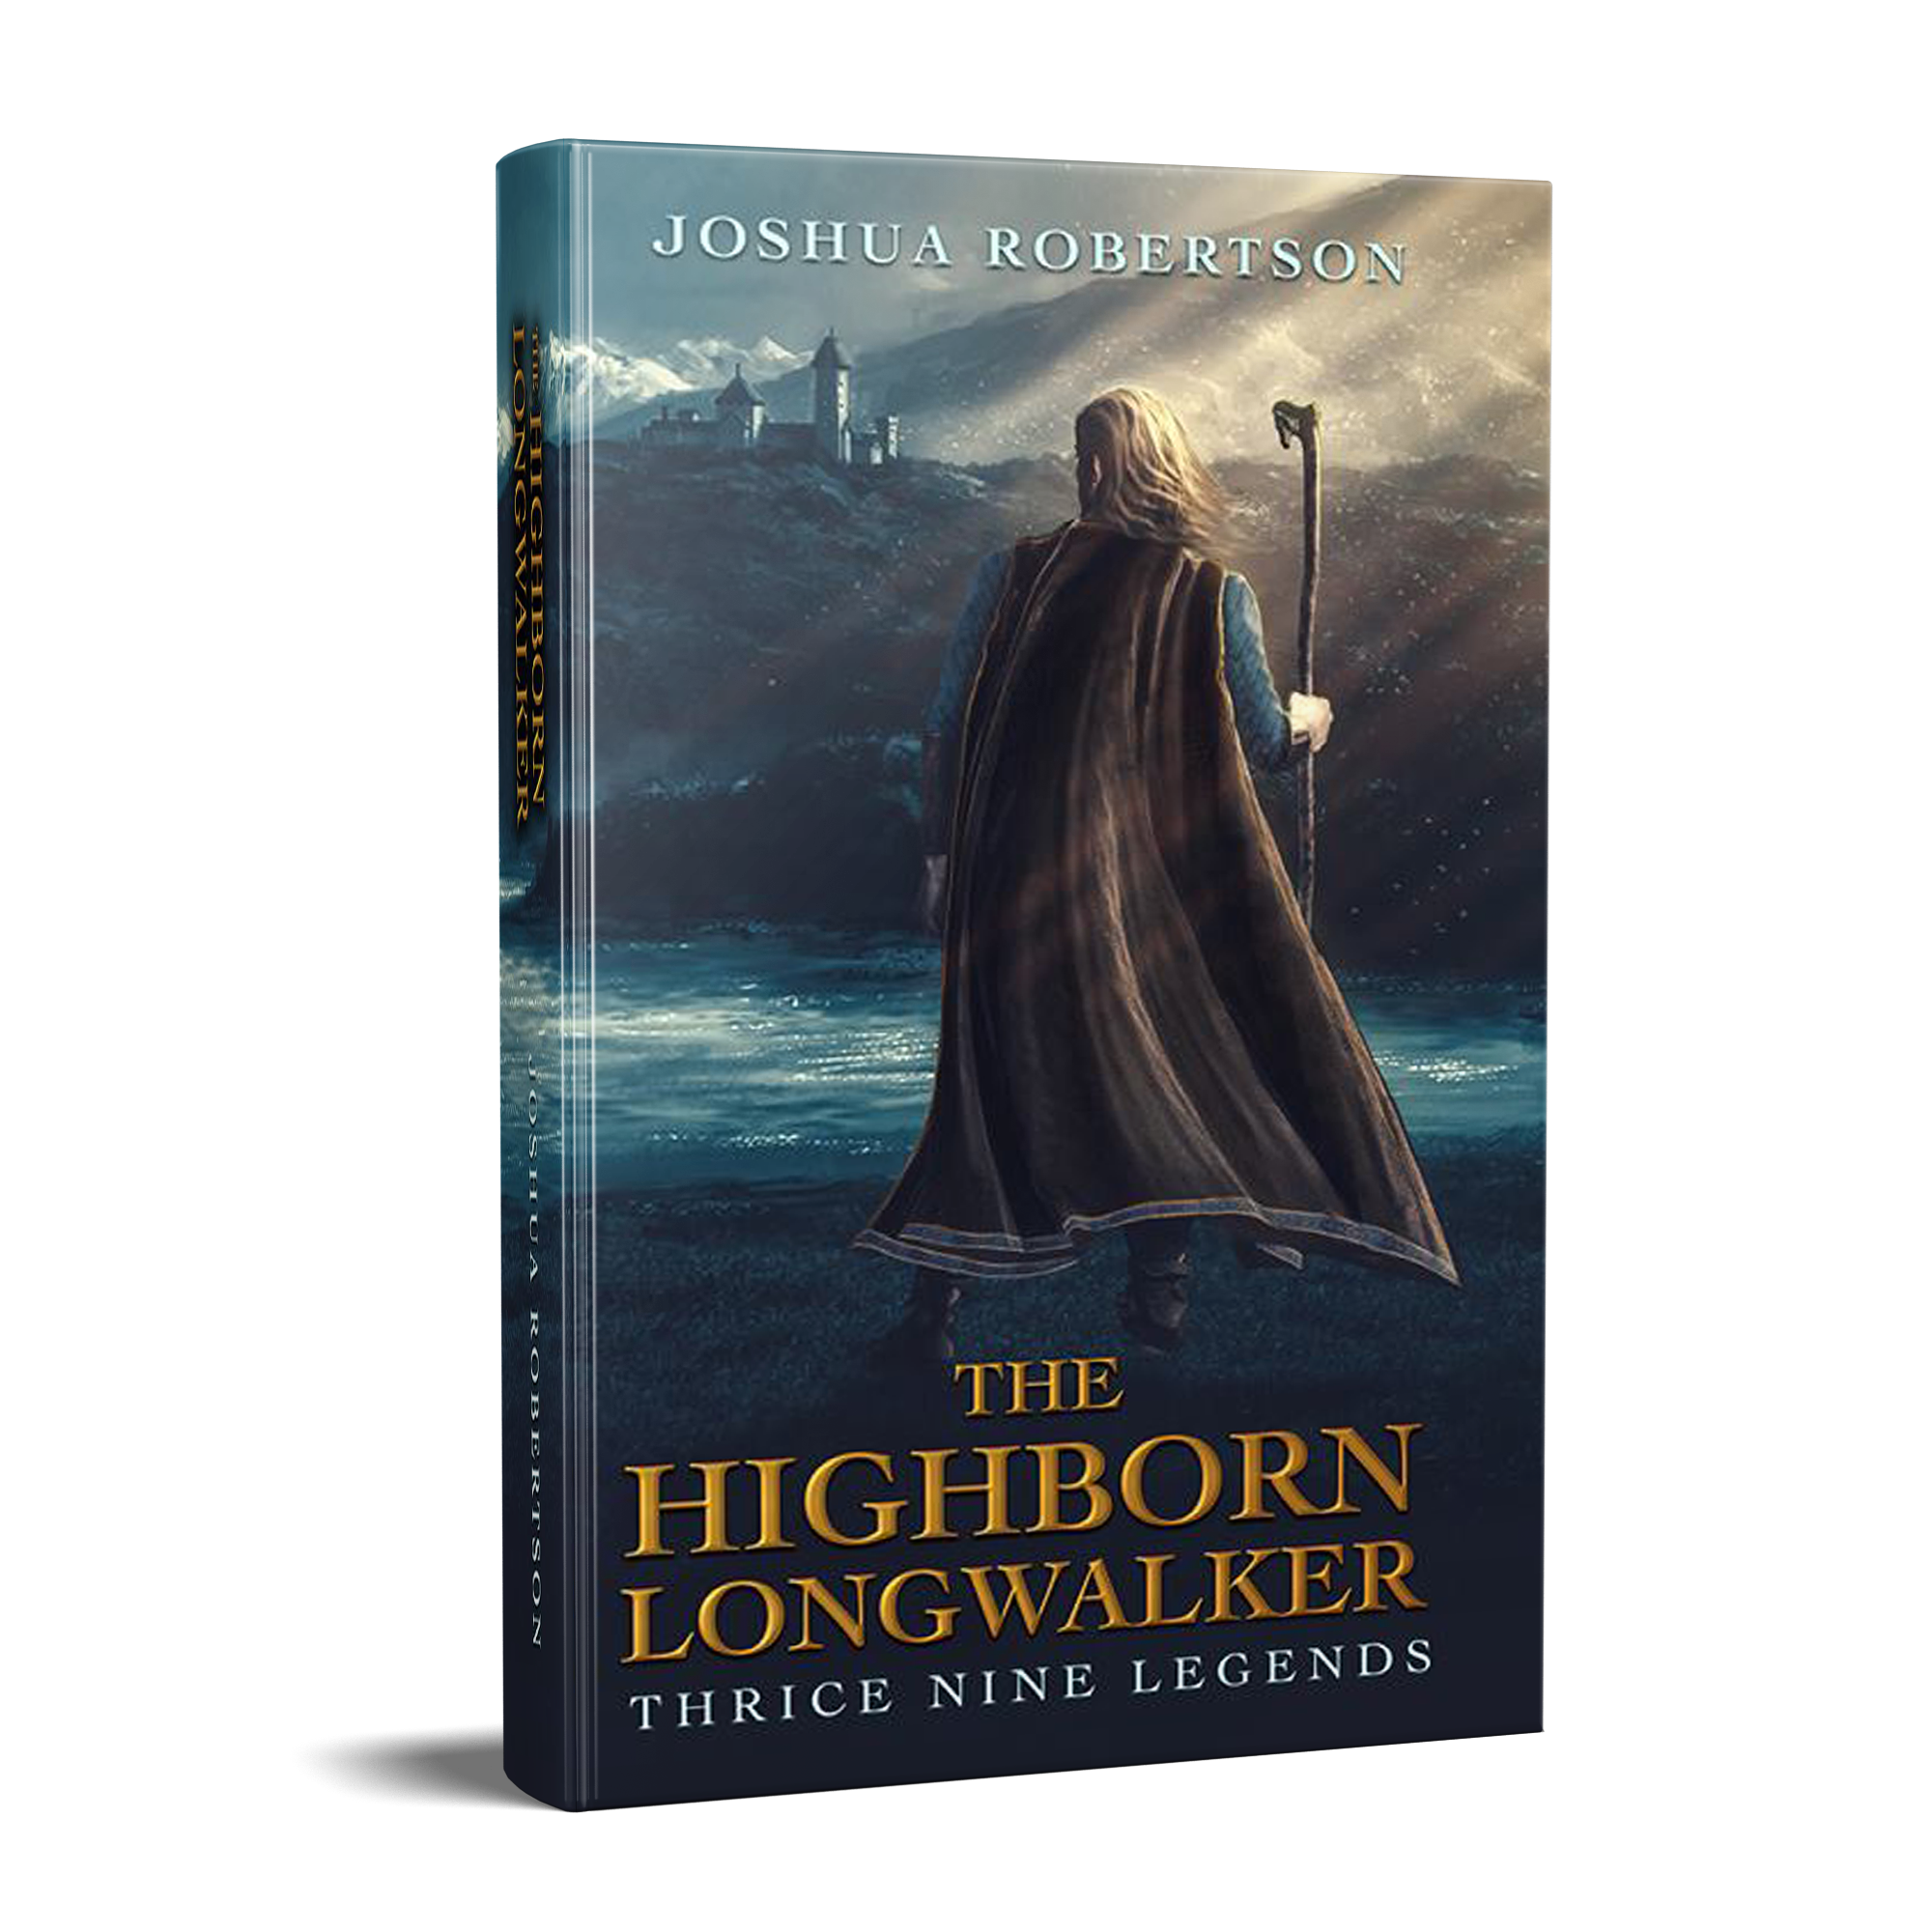 The Highborn Longwalker - Paperback 00008